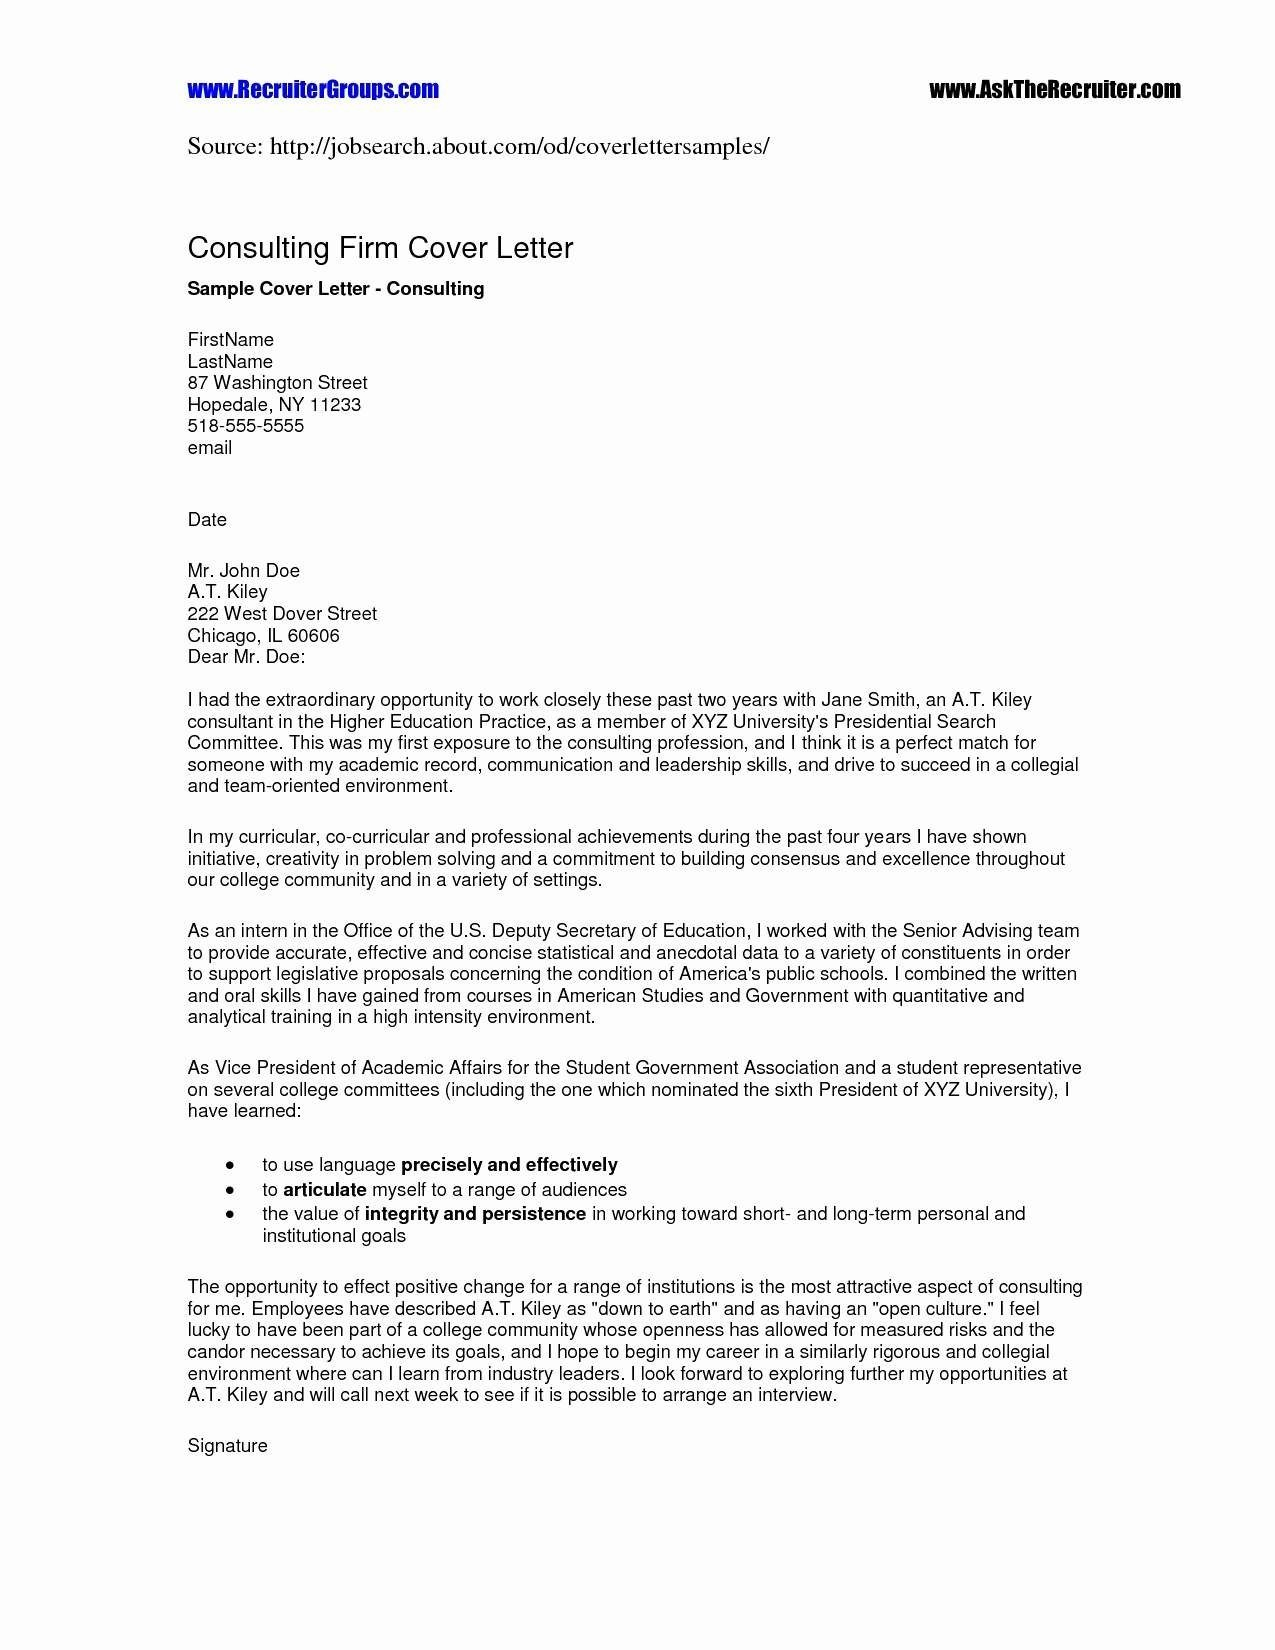 professional letter template microsoft word 2007 new microsoft word